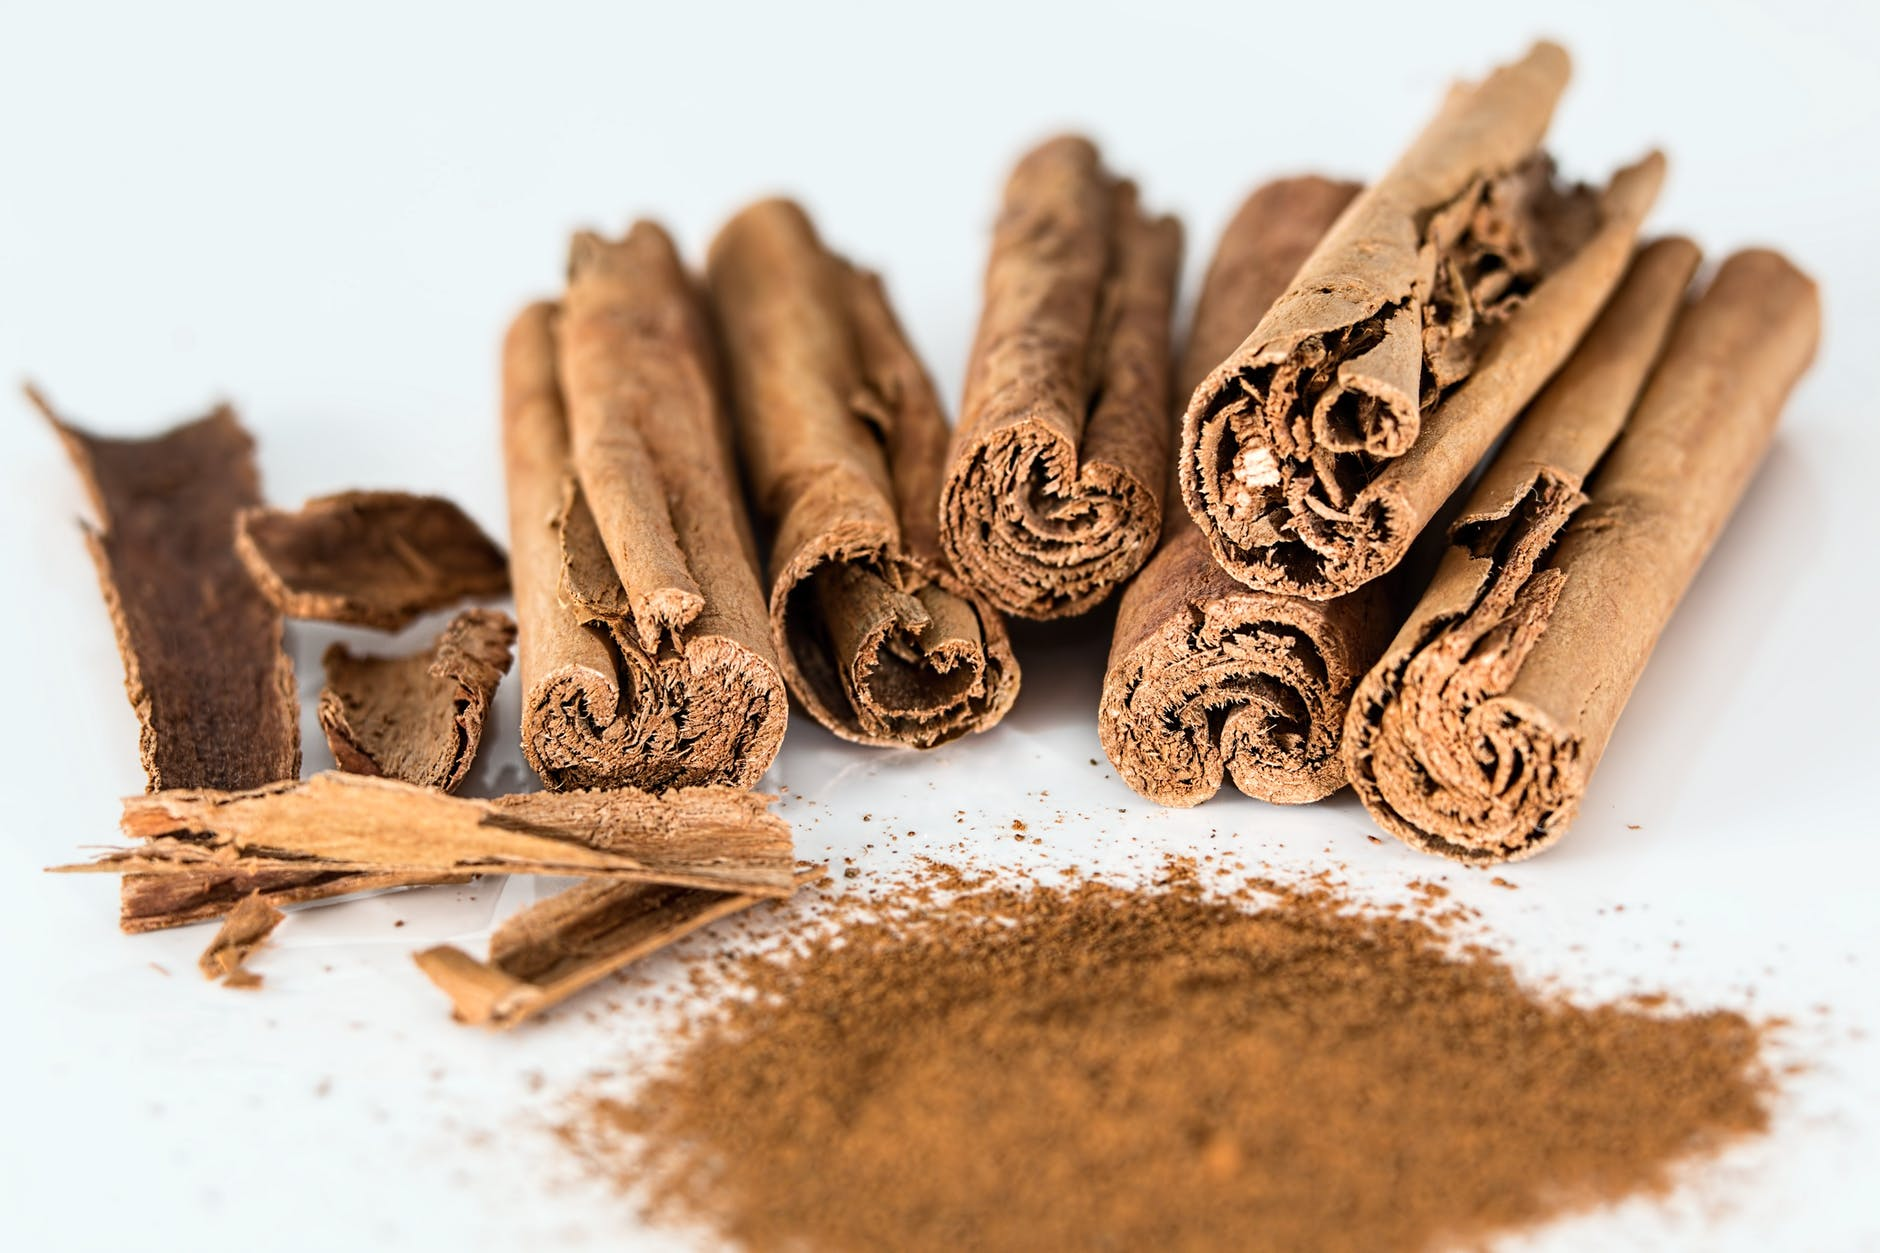 brown wrapped tobacco